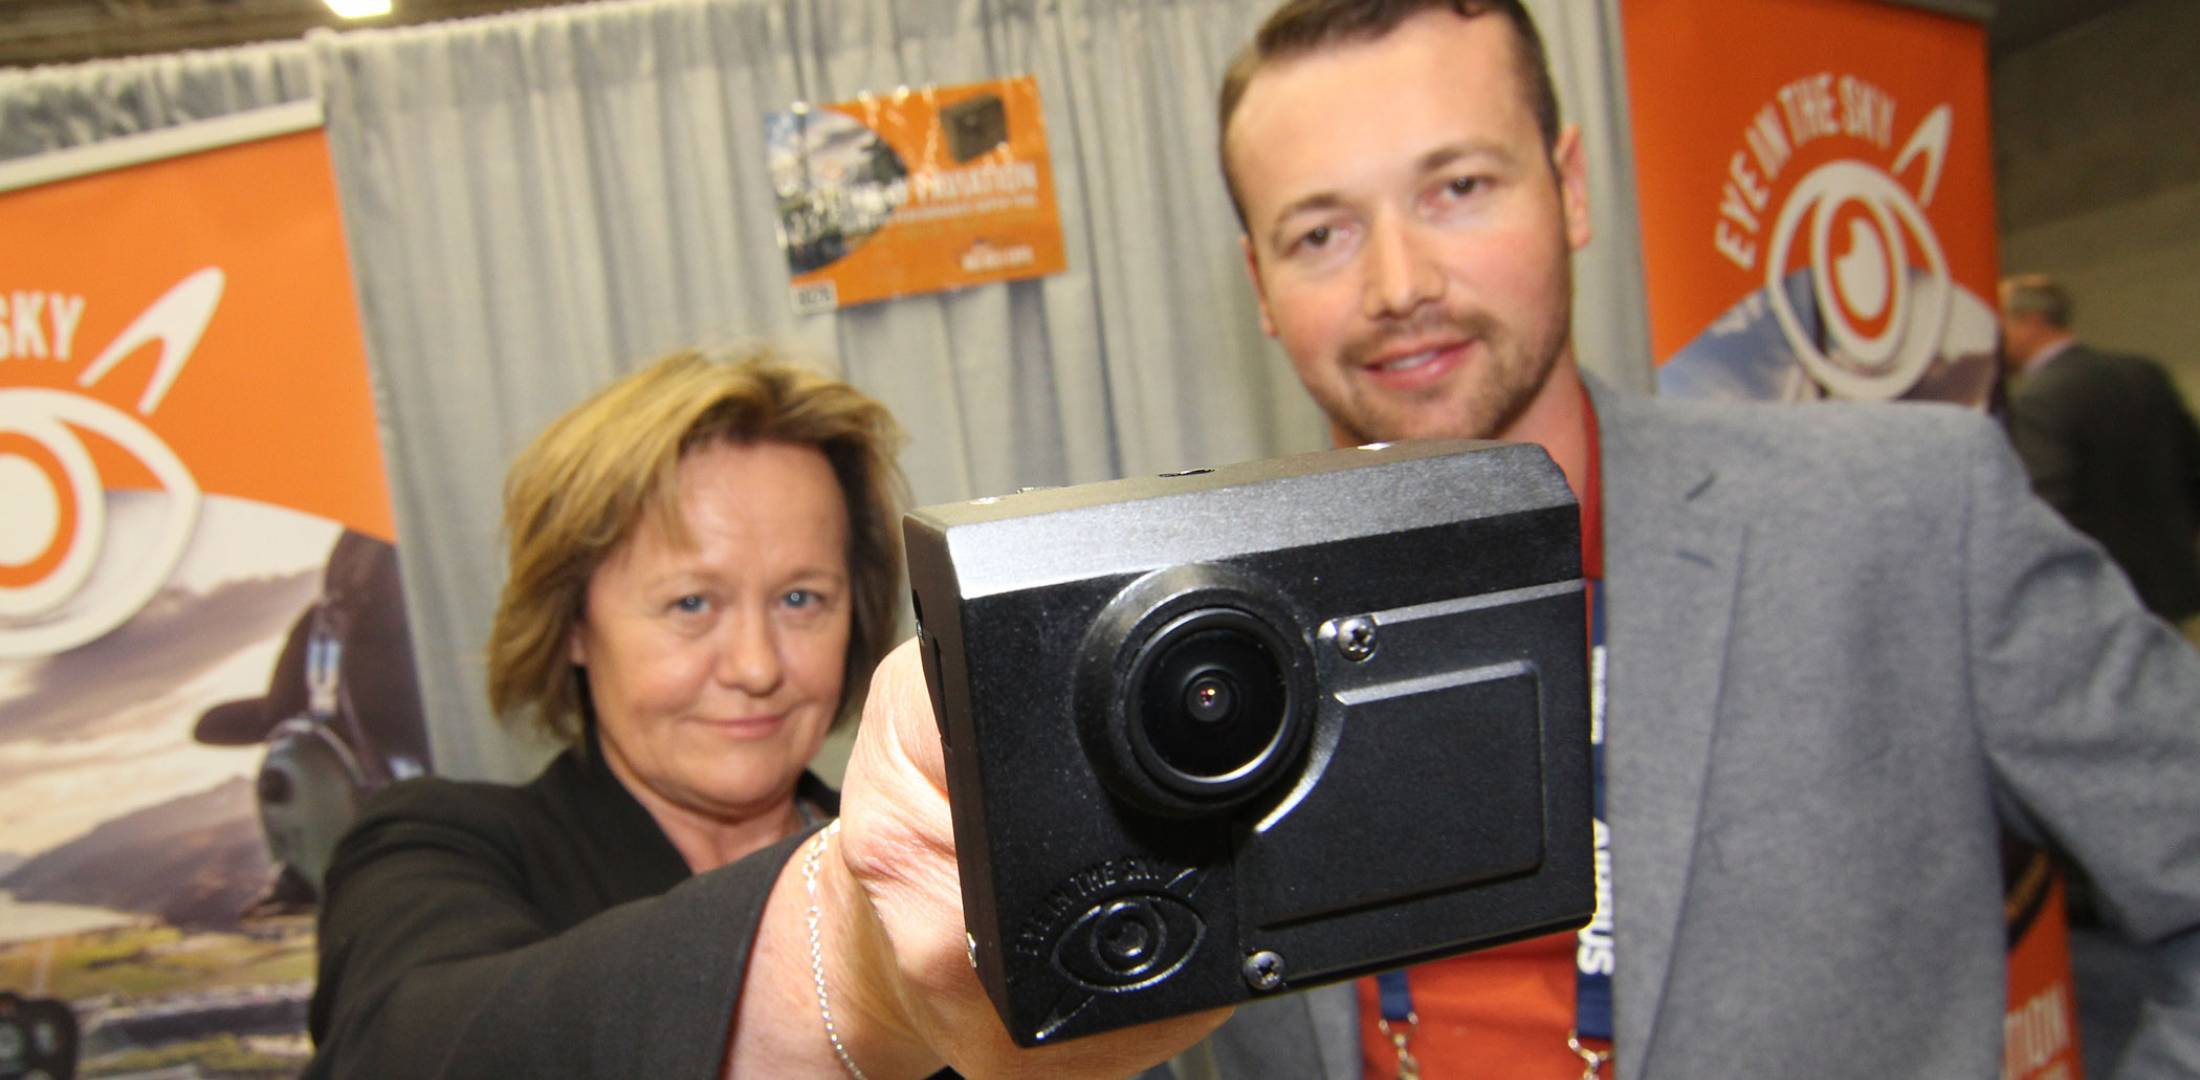 New Zealand air-tour CEO Louisa Patterson (left) has developed an in-cockpit video recorder and started Eye in the Sky to market the device. Photo: Mariano Rosales